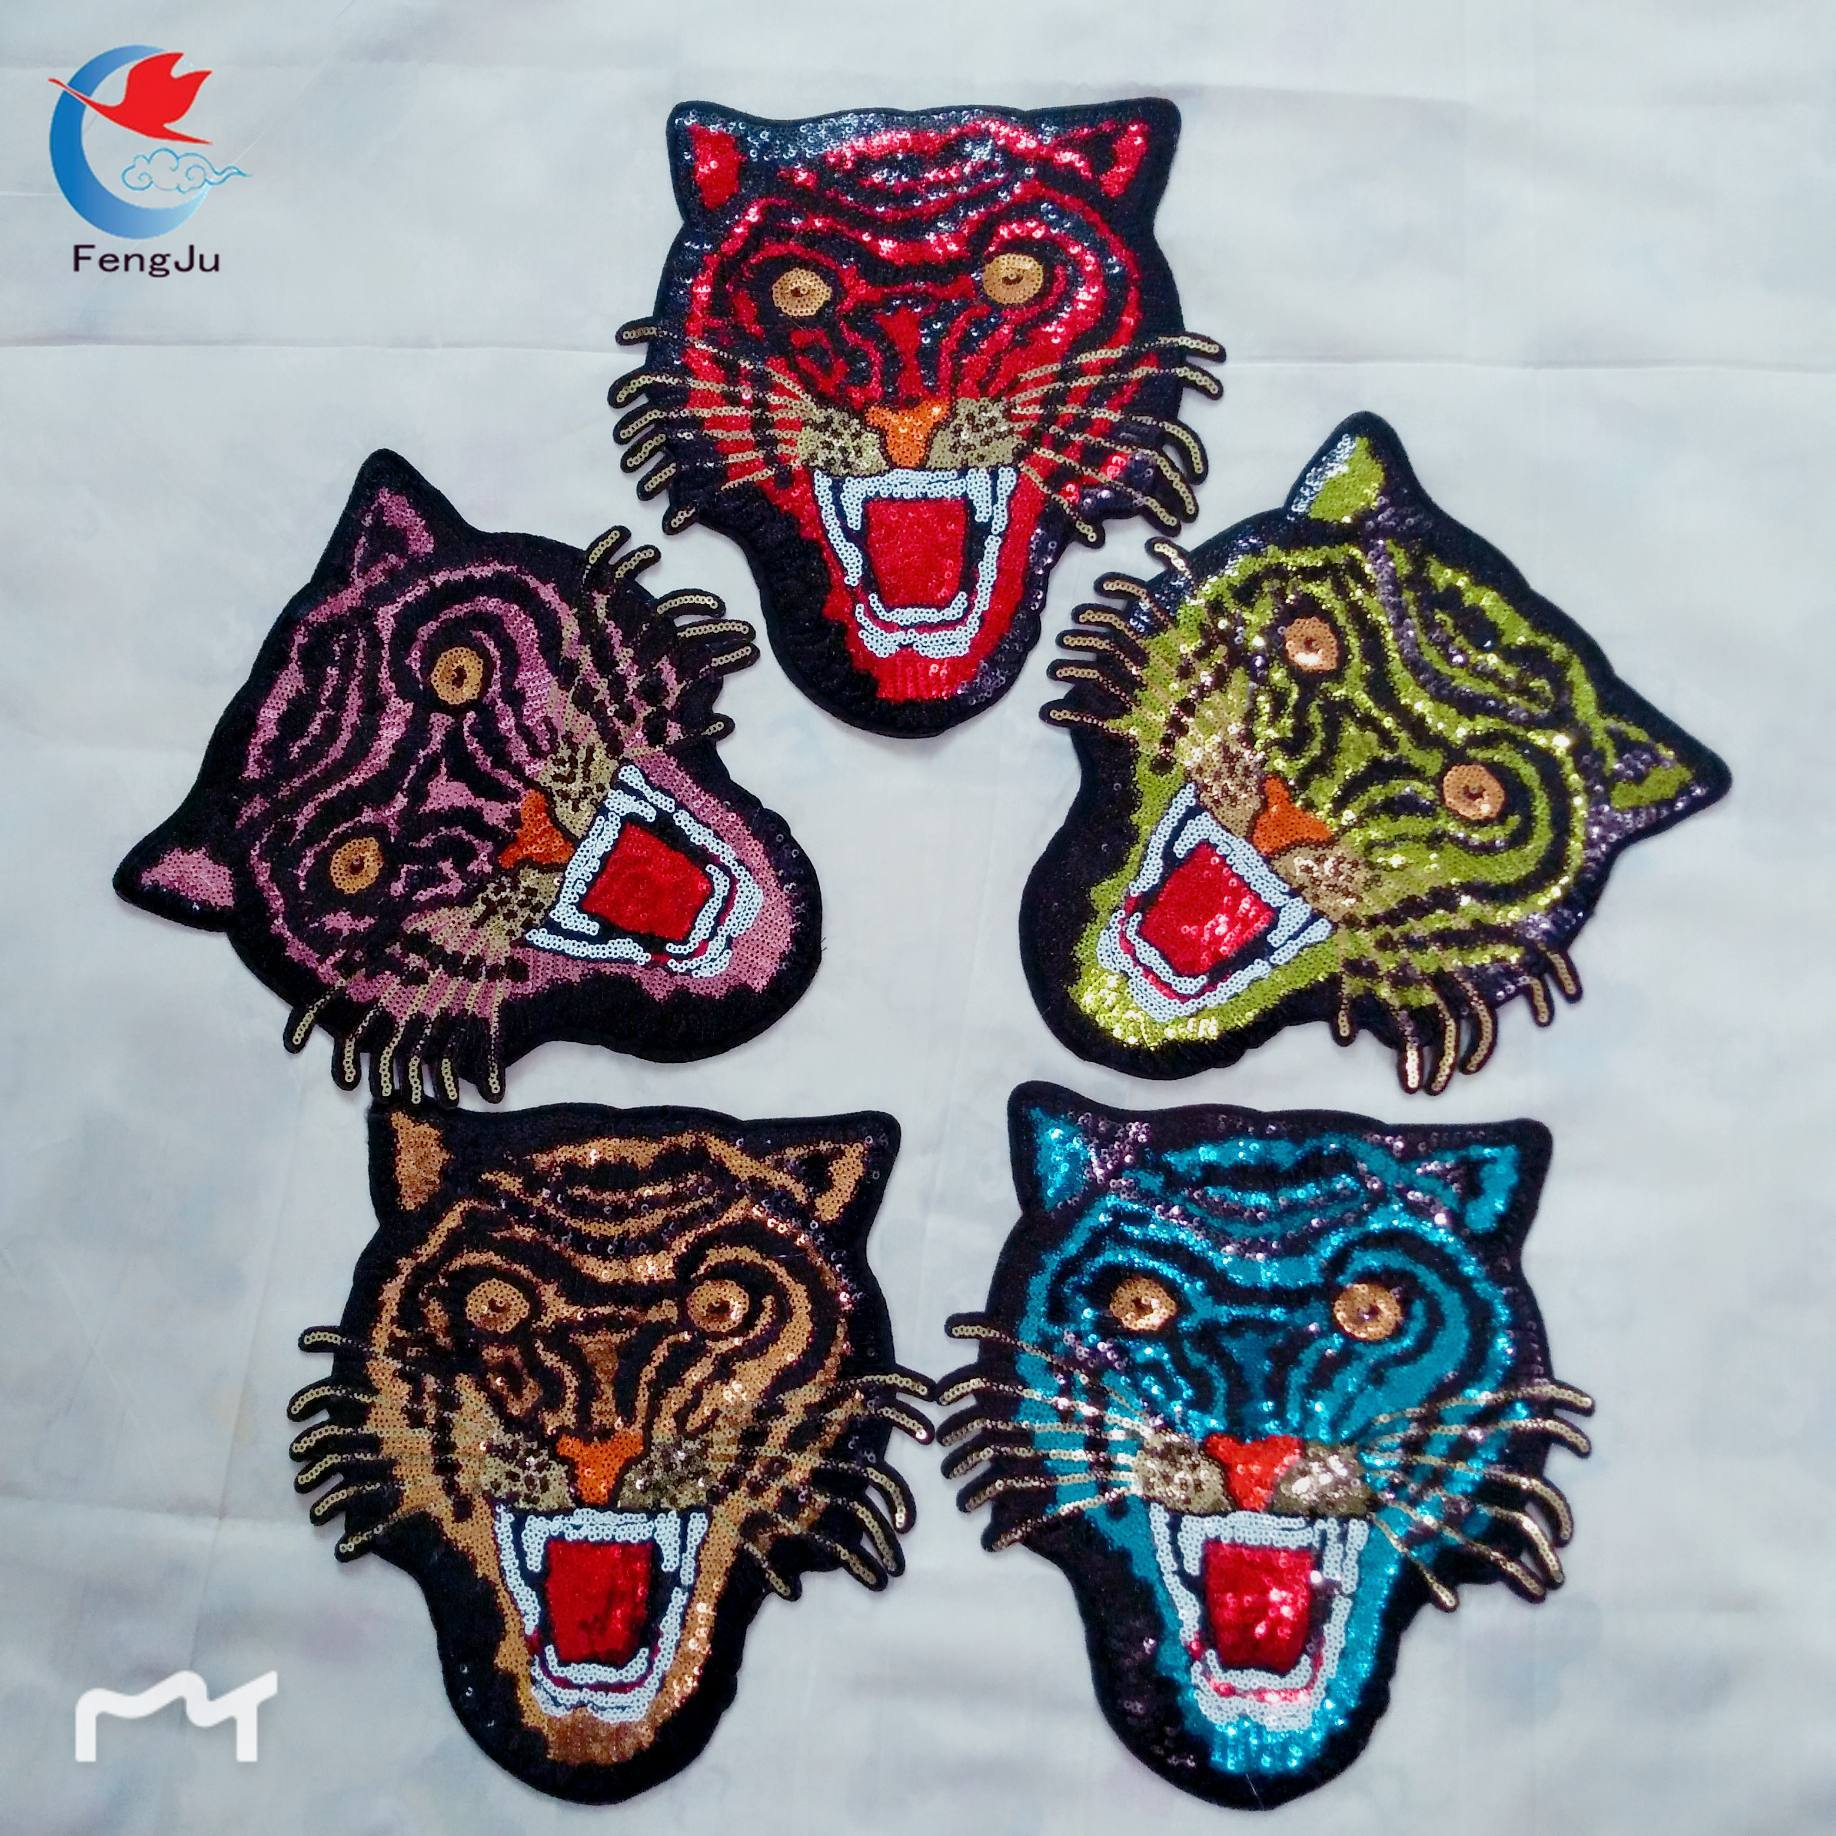 f329d407f460b 1pc Tiger head sequined patches Applique Clothing Embroidery Iron on Patches  Fabric Sticker Repair Sequined Patch